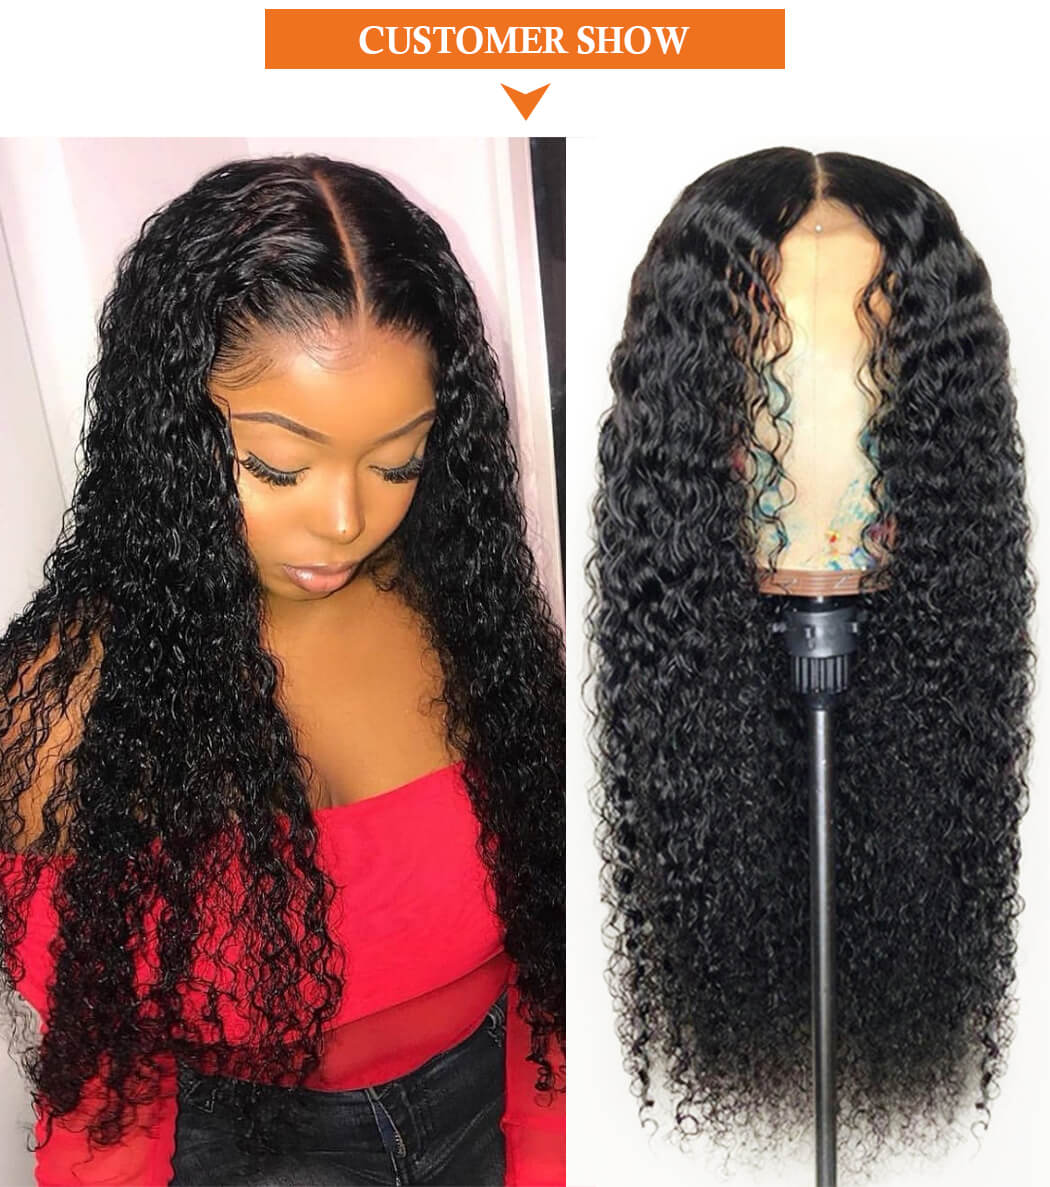 Lace Front Wigs For Women 150% Density Pre Plucked Lace Frontal Wig Human Hair